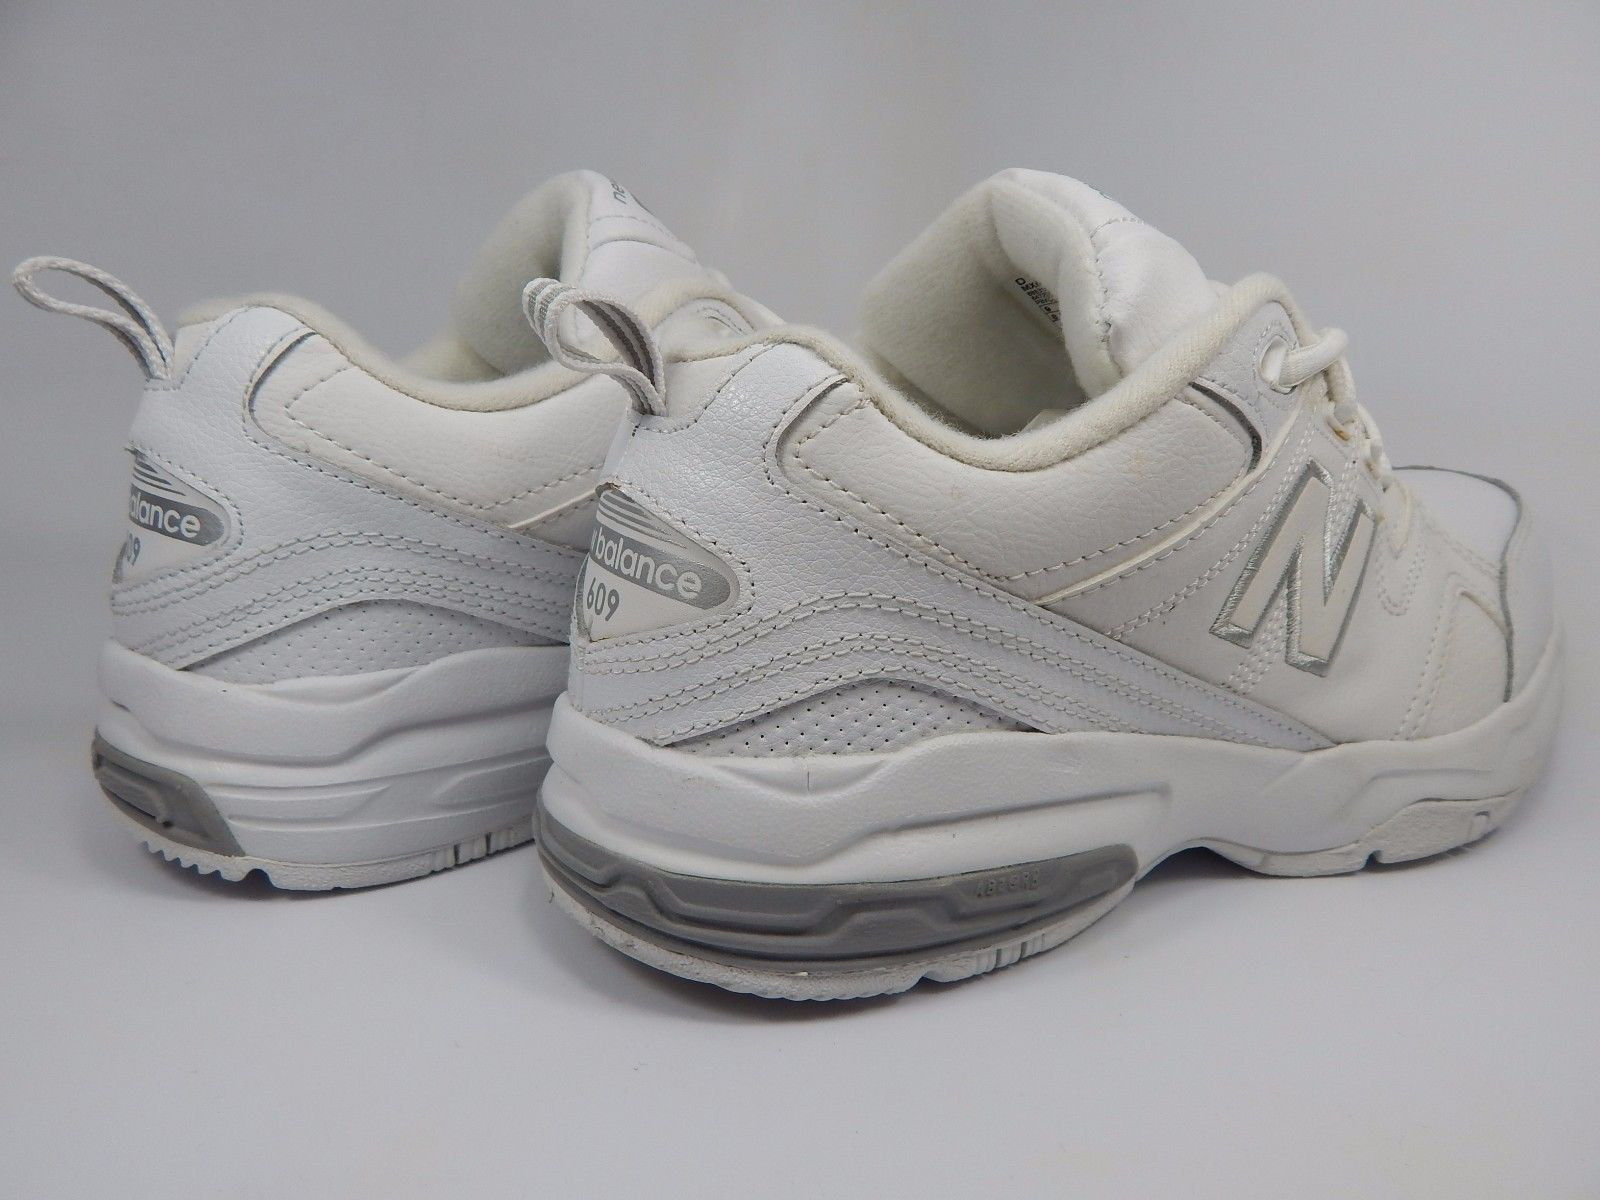 New Balance 609 v2 Men's Training Shoes Size US 9 M (D) EU: 42.5 White MX609V2A